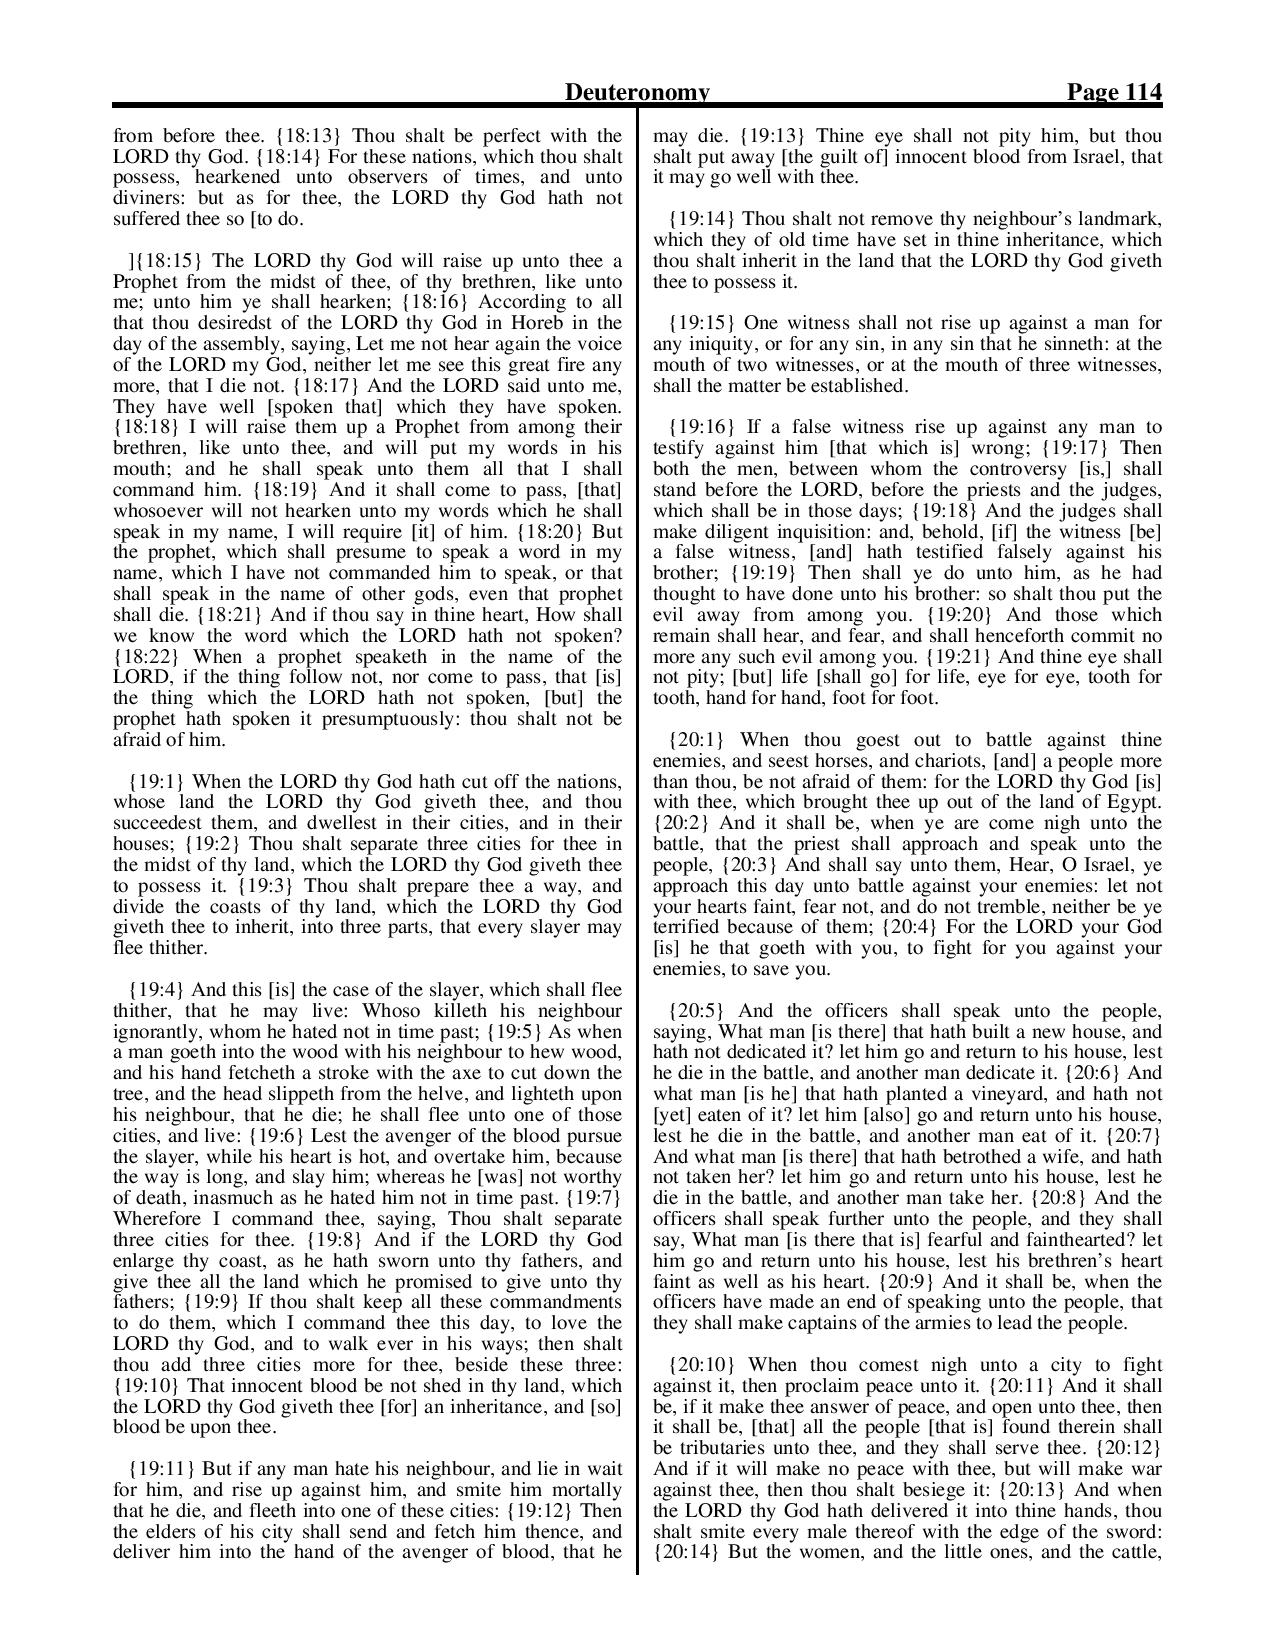 King-James-Bible-KJV-Bible-PDF-page-135